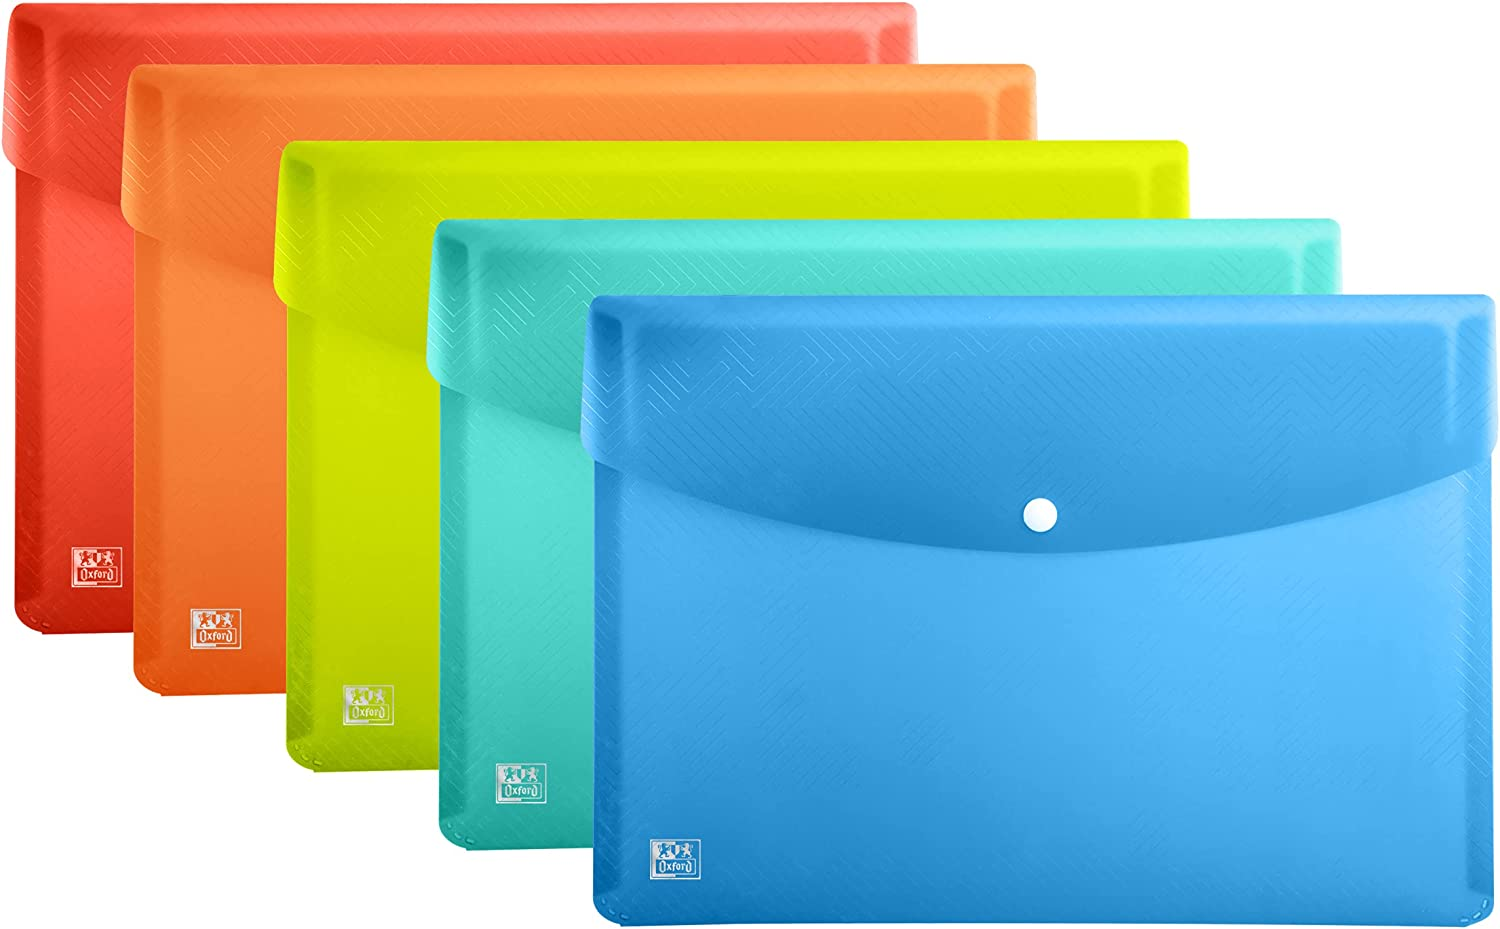 Oxford 5 Pack A3 Plastic Wallets Document Product 70% OFF Outlet Colours